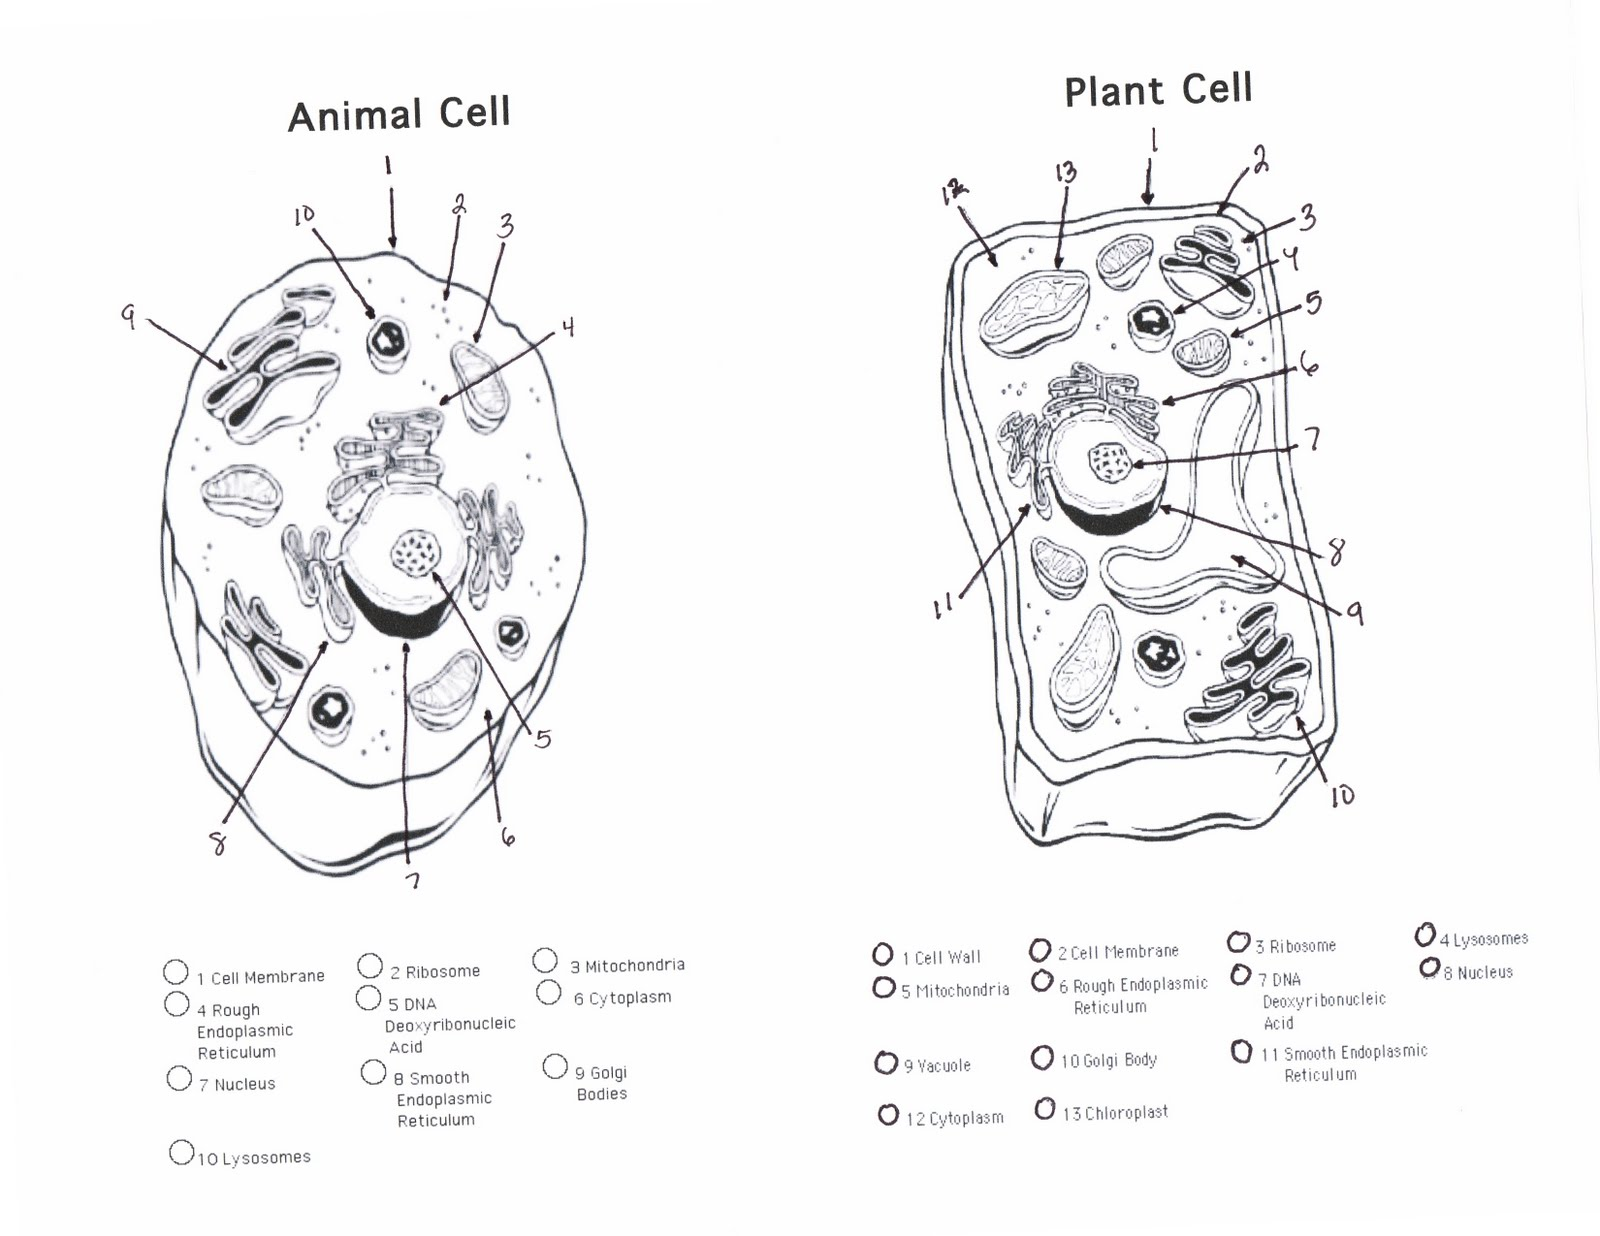 Plant And Animal Cells Diagram Quiz 6 Animal And Plant Cell Quiz – Plant and Animal Cell Diagram Worksheet